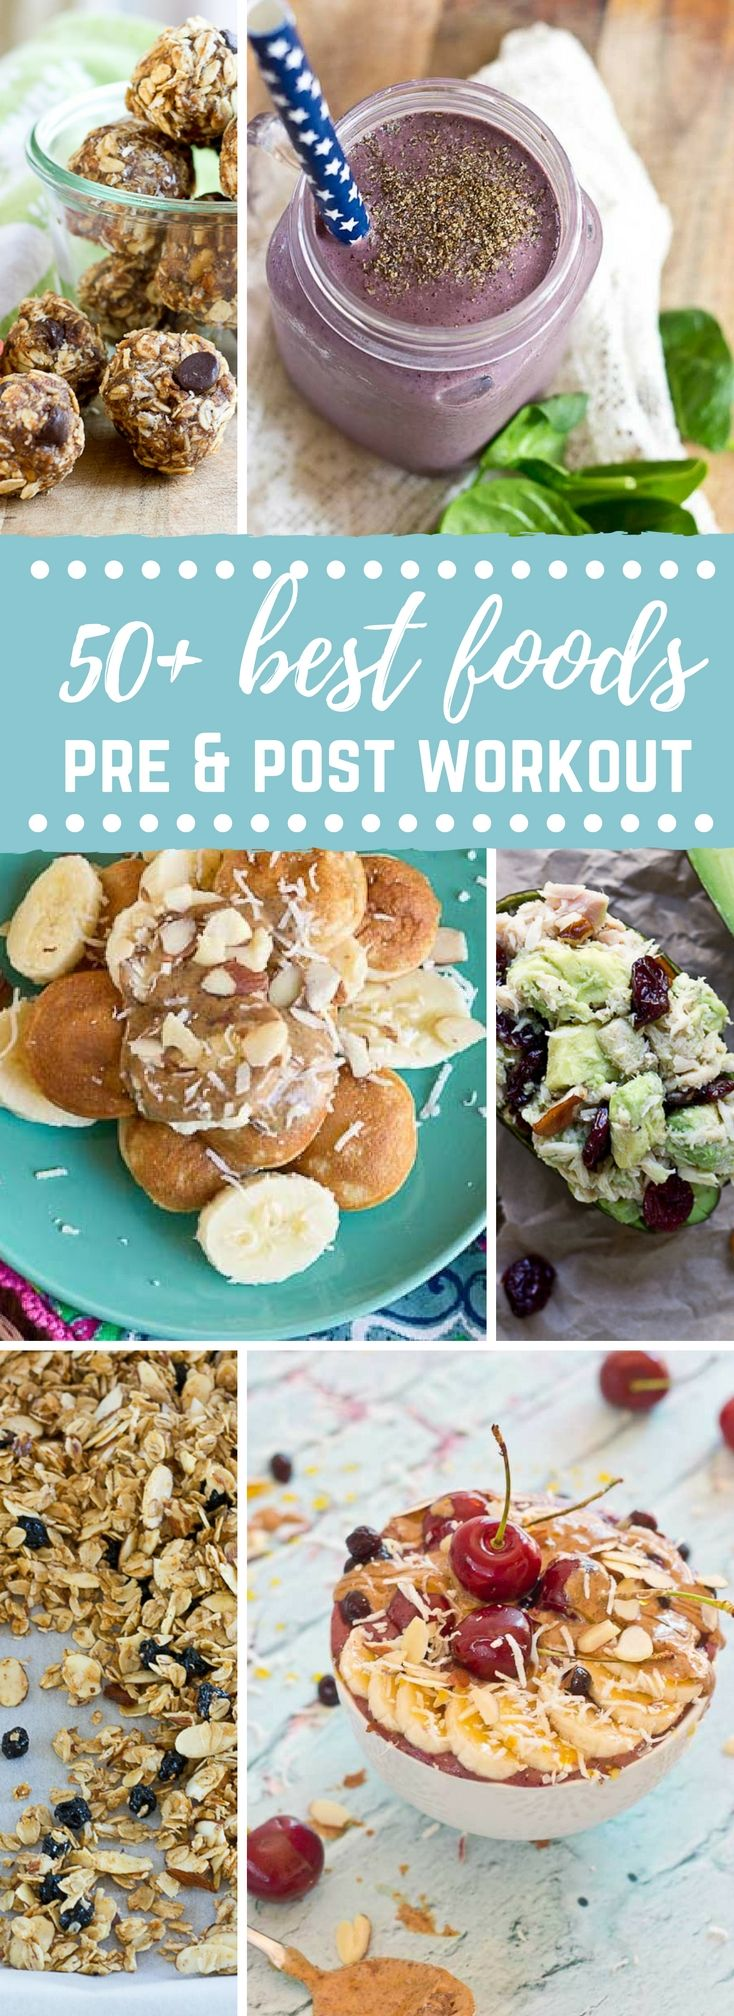 50 + Best Foods to Eat Before and After a Workout http://www.loveandzest.com/2016/08/best-foods-to-eat-before-and-after-workout.html